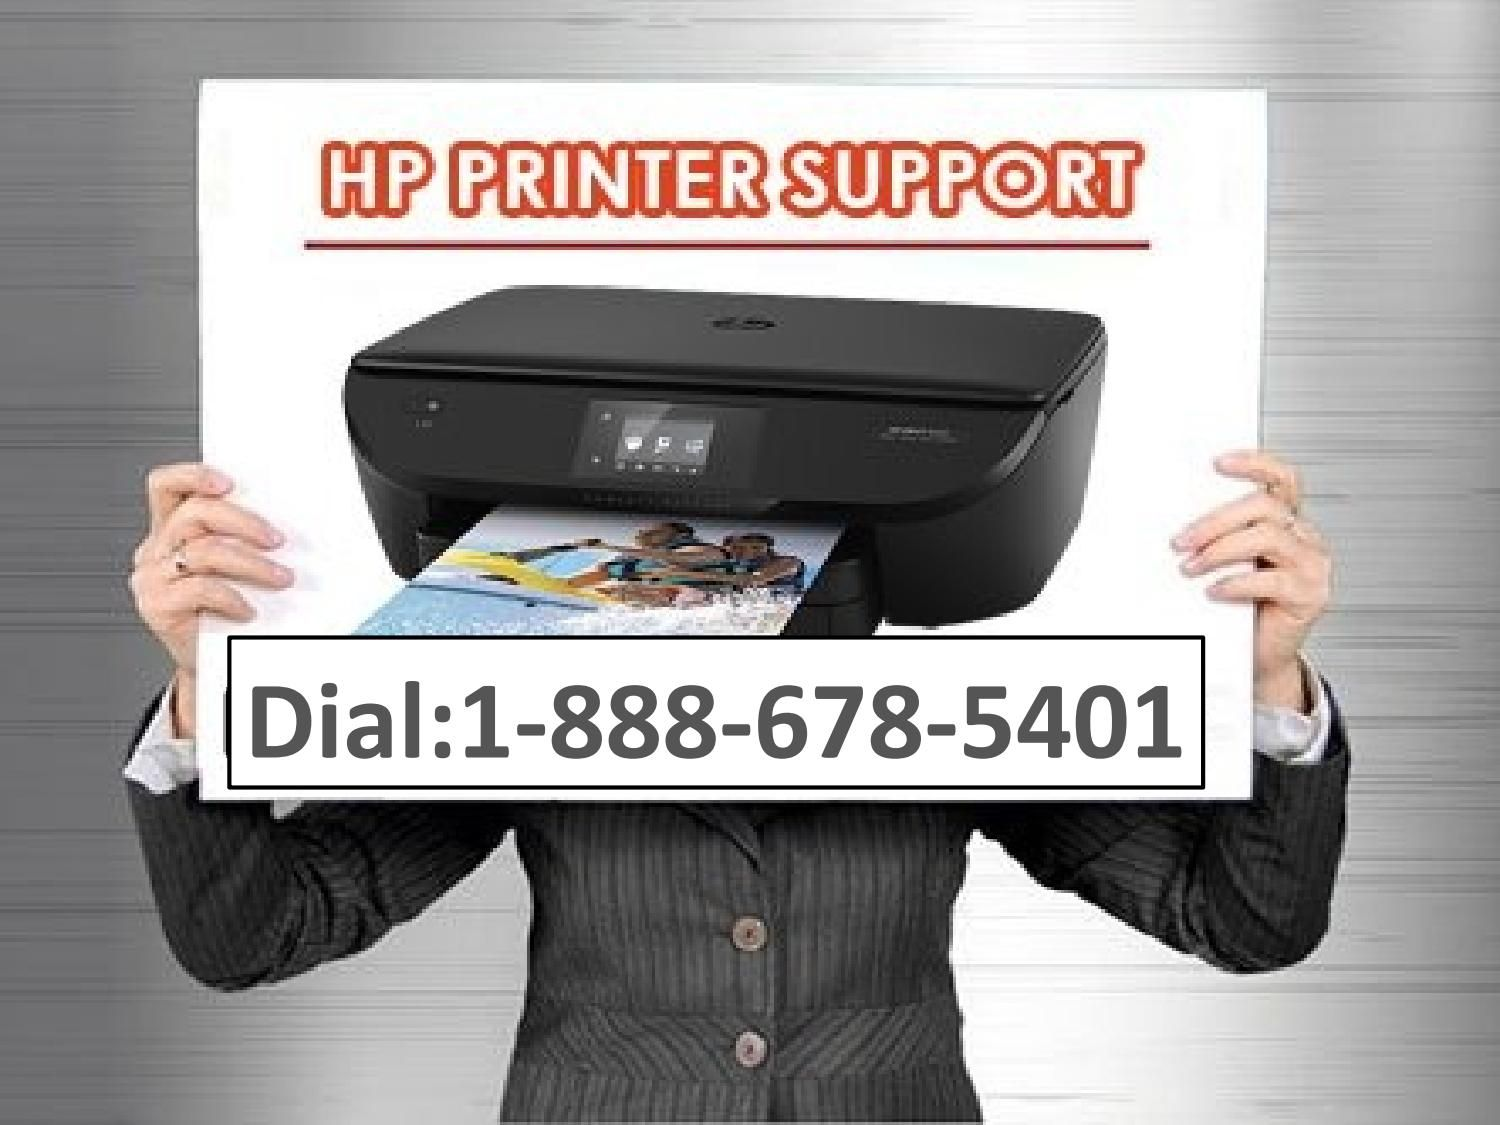 How to Connect HP printer to WiFi Dial 18886785401 HP